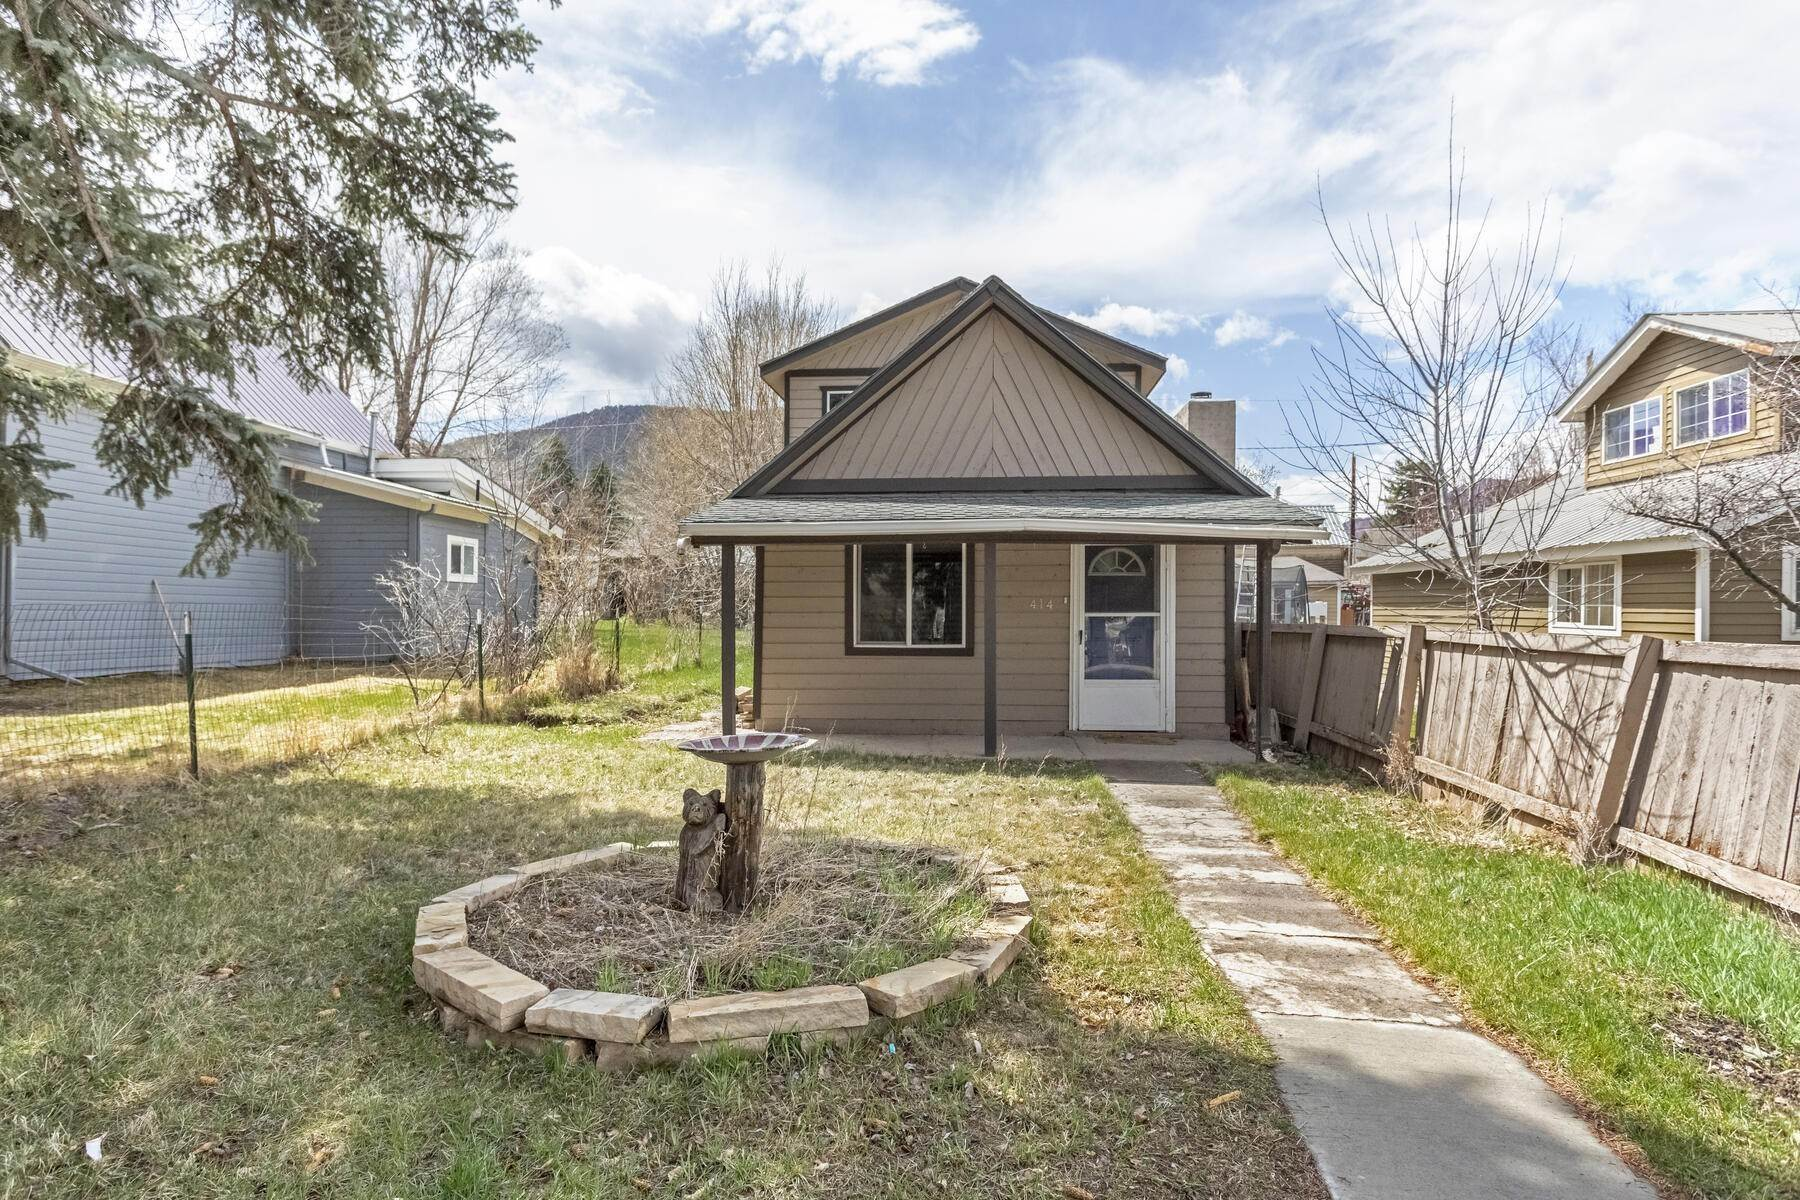 Single Family Homes for Sale at Single family home in Old Gypsum 414 Second Street Gypsum, Colorado 81637 United States